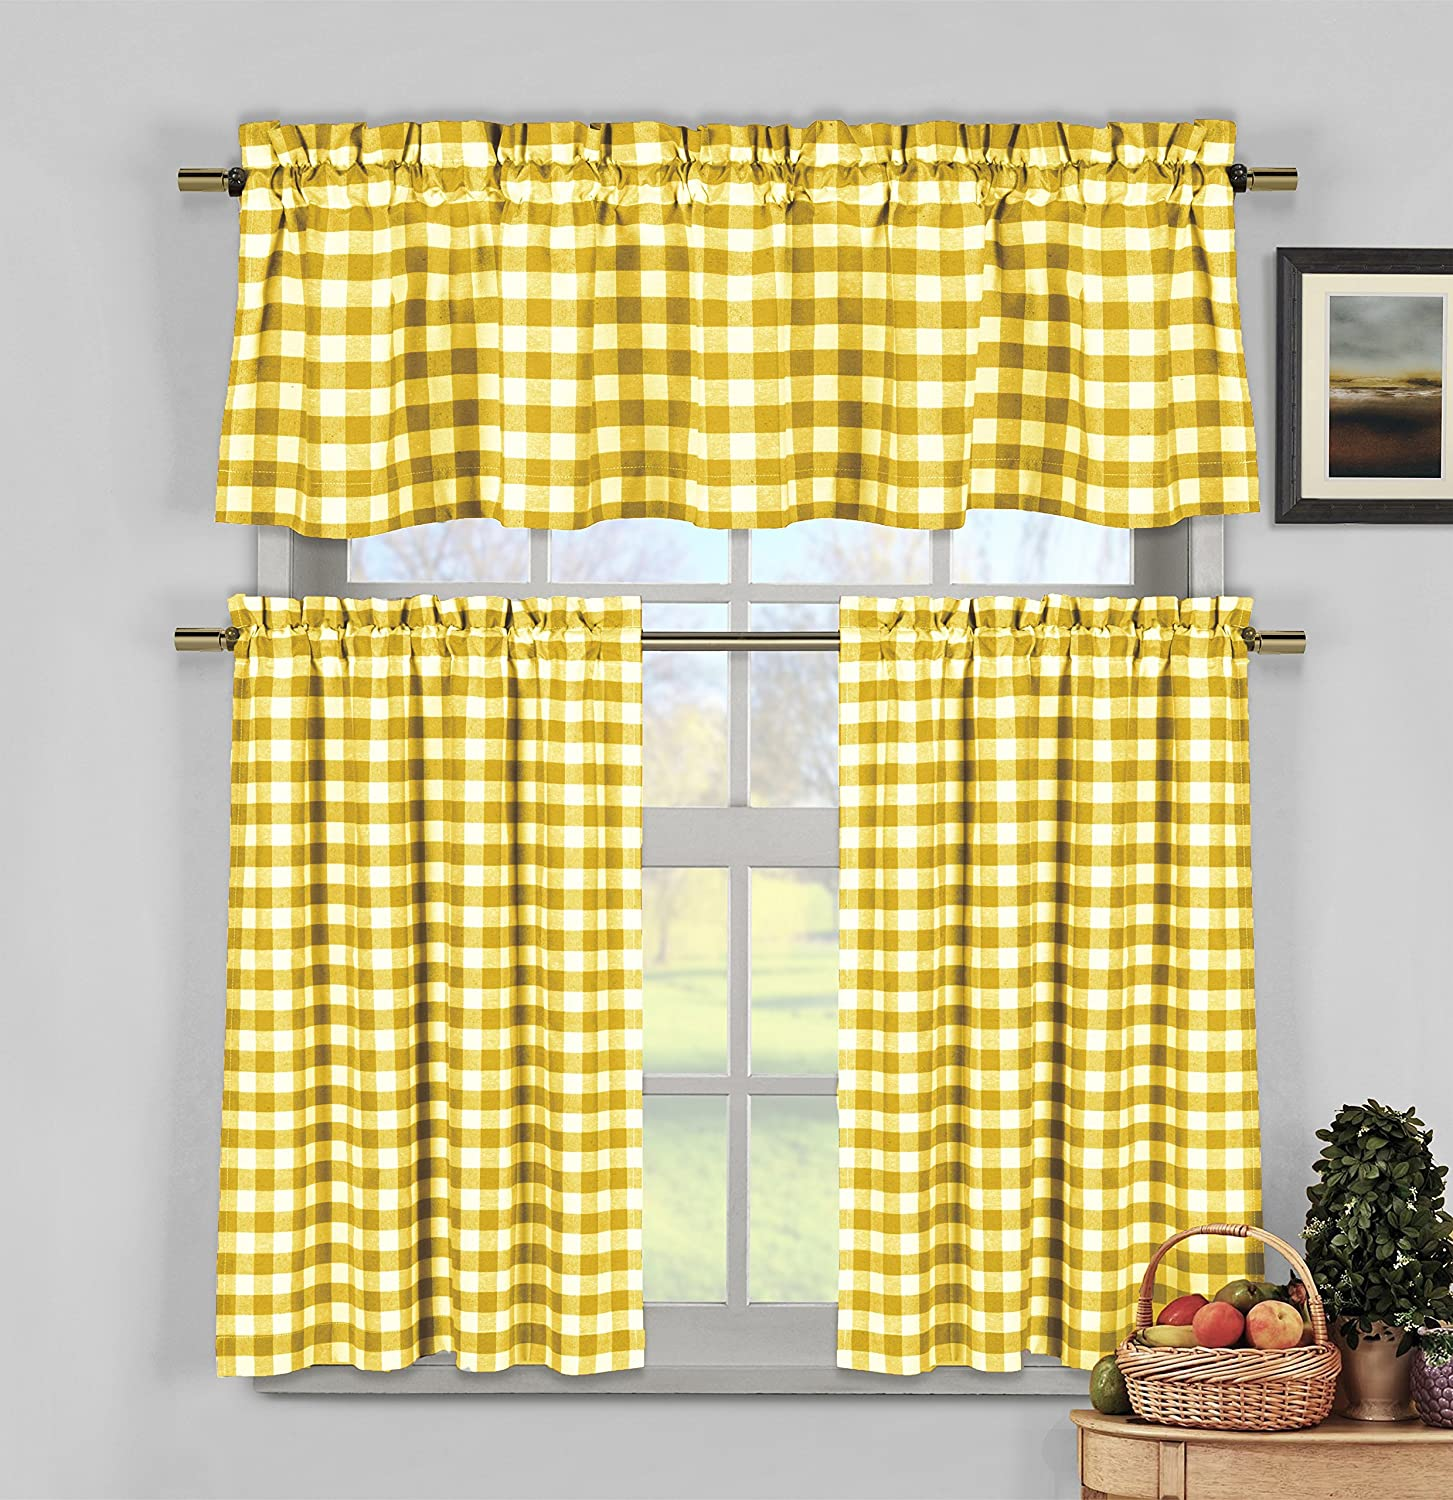 Amazoncom Piece Plaid Checkered Gingham Cotton Kitchen - Blue and yellow kitchen curtains